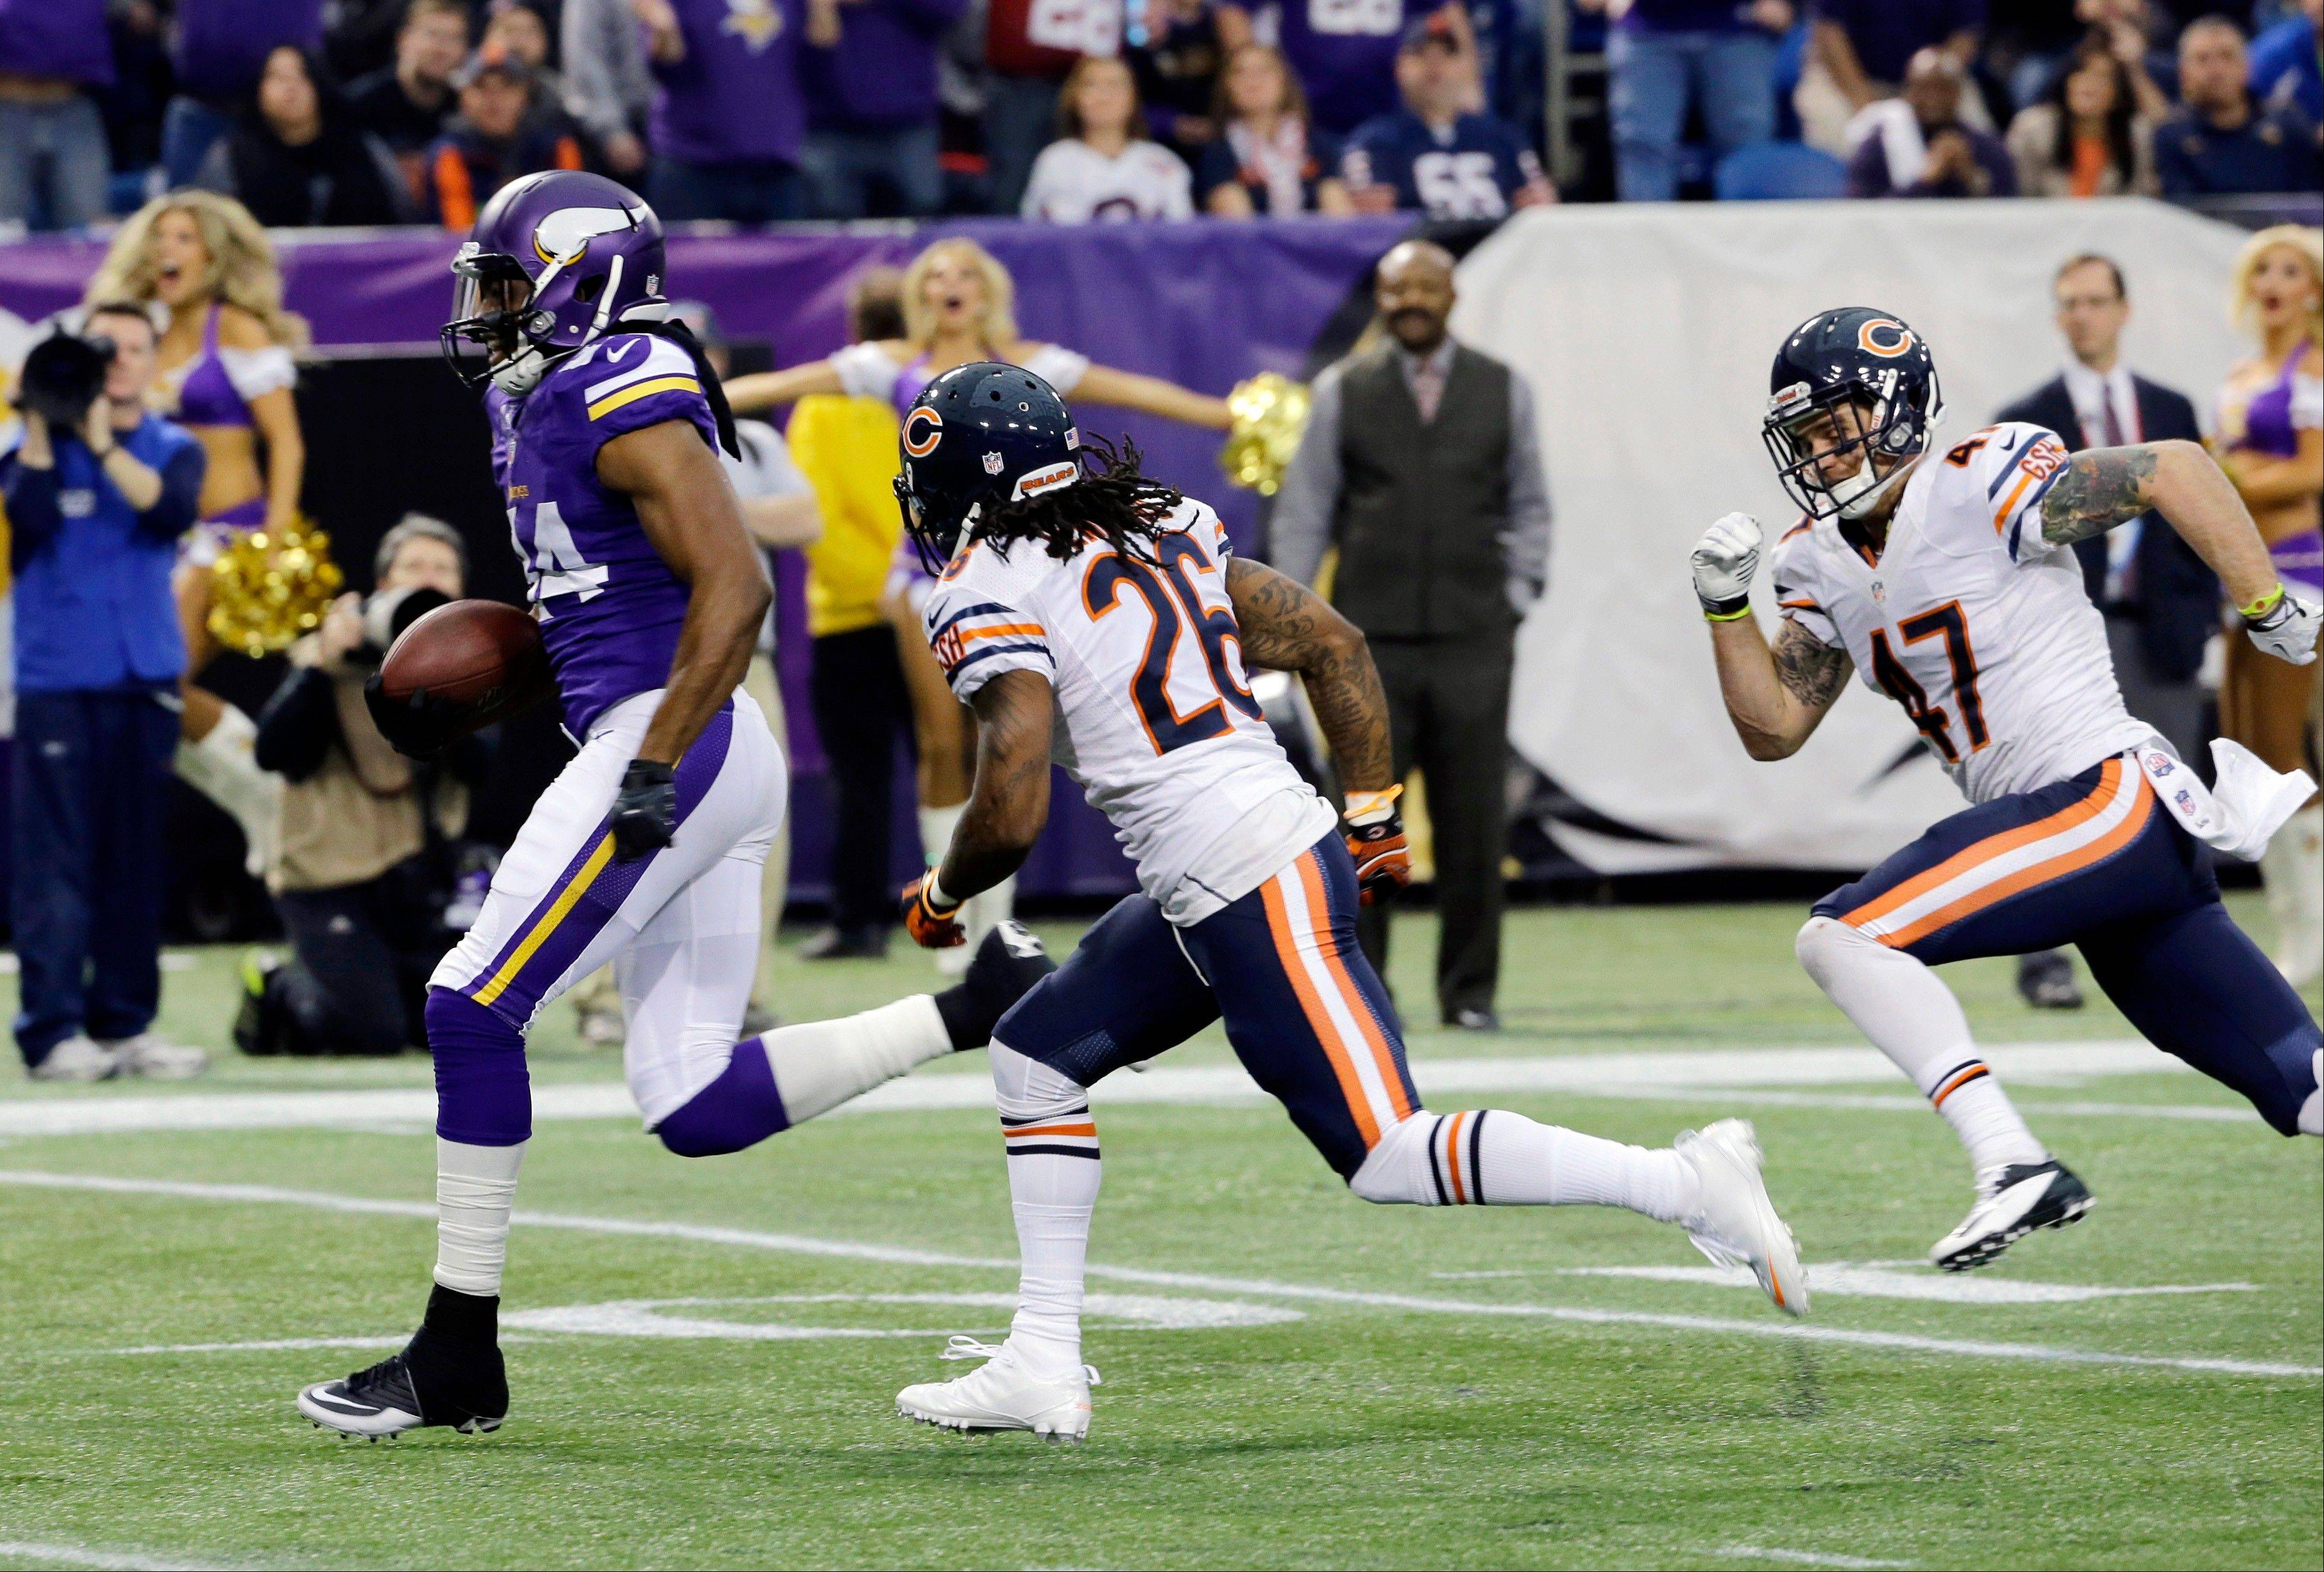 Minnesota Vikings wide receiver Cordarrelle Patterson, left, runs from Chicago Bears defenders Tim Jennings (26) and Chris Conte (47) for a 33-yard touchdown run in the first half of an NFL football game, Sunday, Dec. 1, 2013, in Minneapolis.